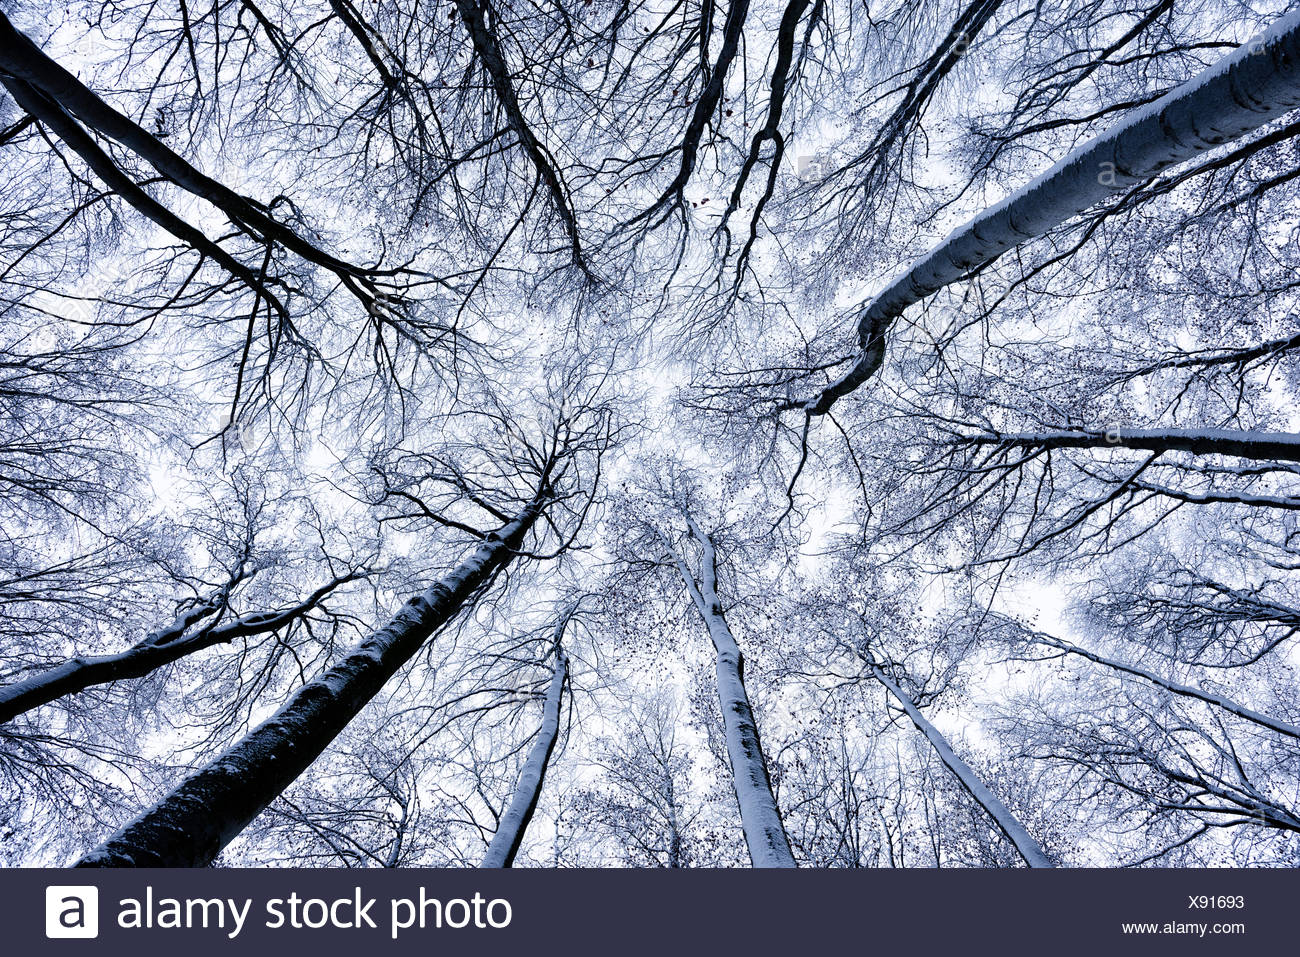 Germany, Bavaria, Augsburg Western Woods Nature Park, trees, winters, snow, cold, on top, view, centred, sky, white, branches, nature, scenery, - Stock Image